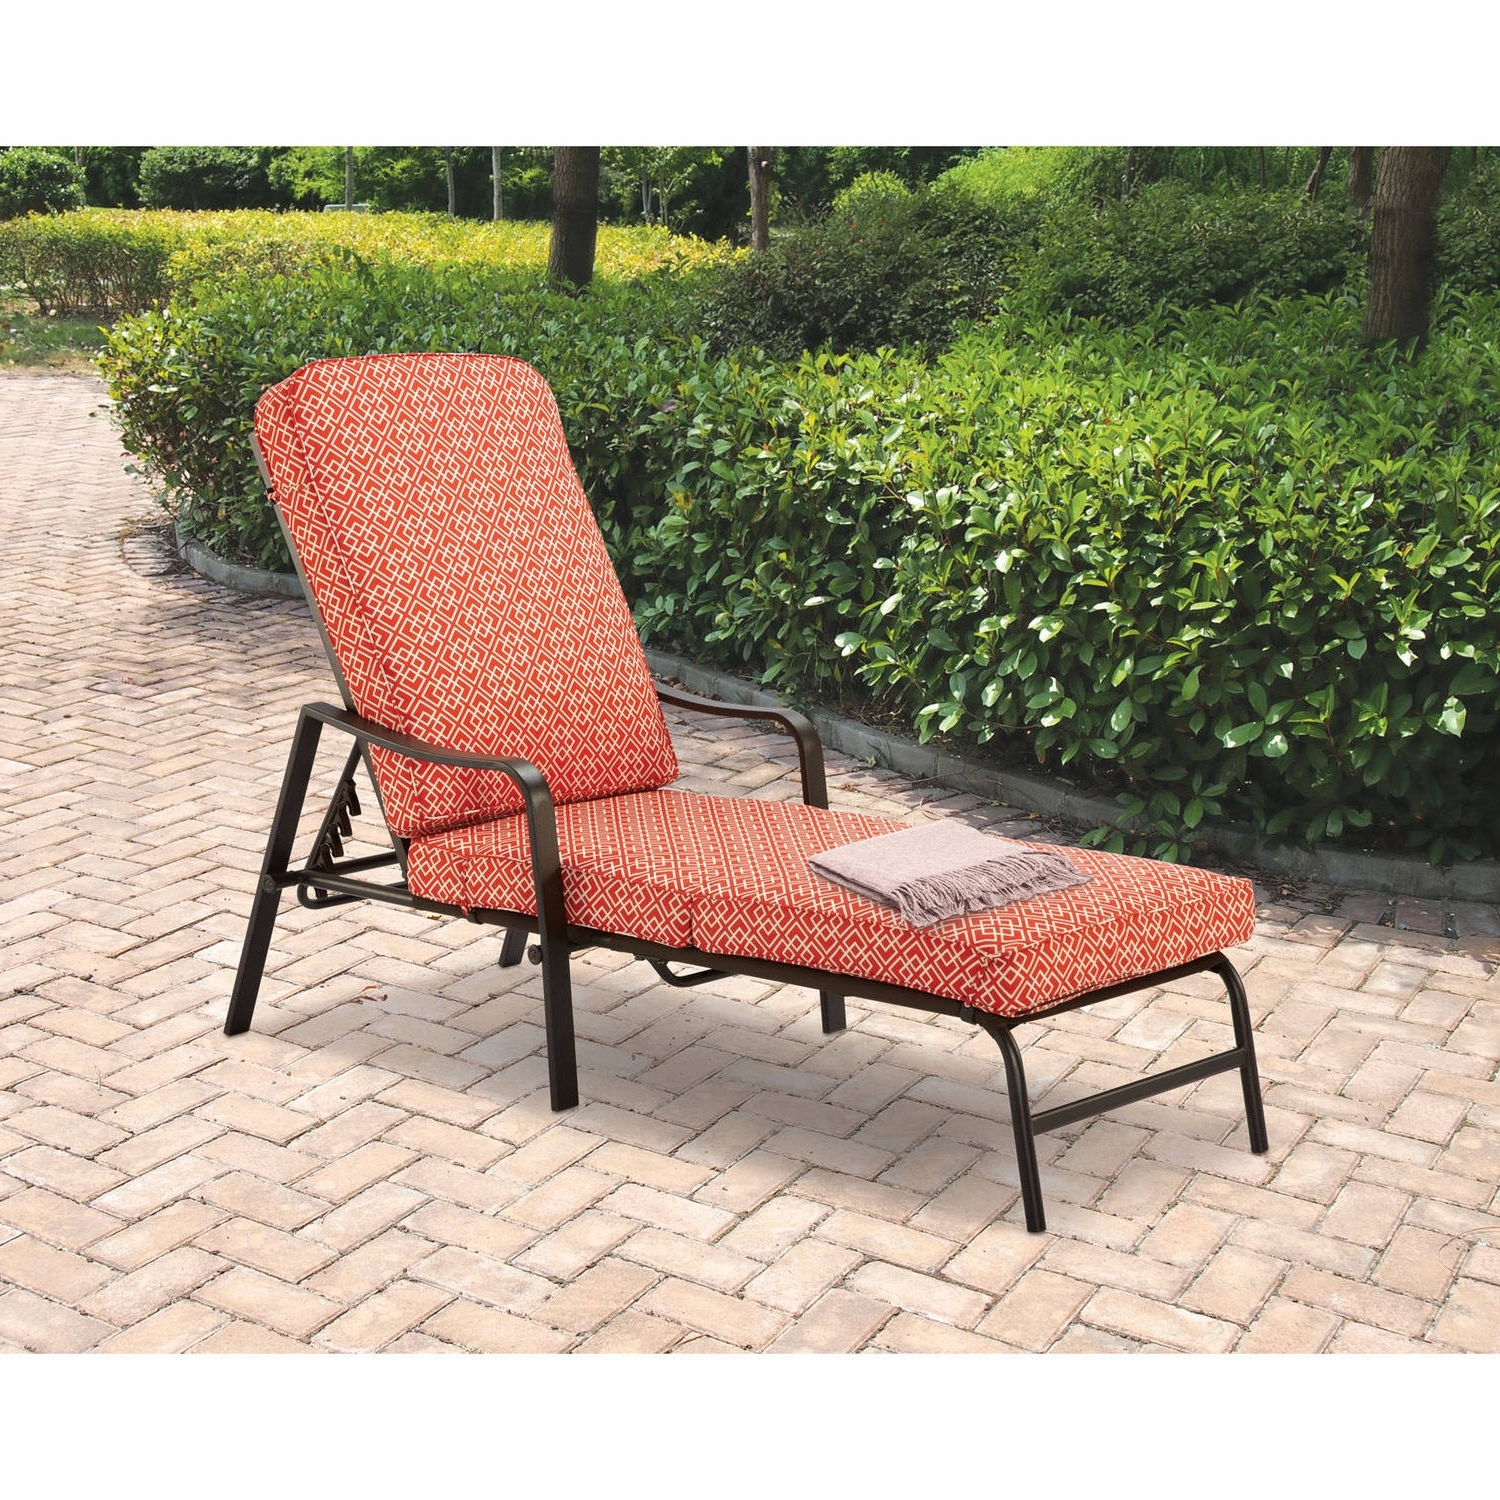 Well Known Walmart Outdoor Chaise Lounges For Mainstays Outdoor Chaise Lounge, Orange Geo Pattern – Walmart (View 15 of 15)